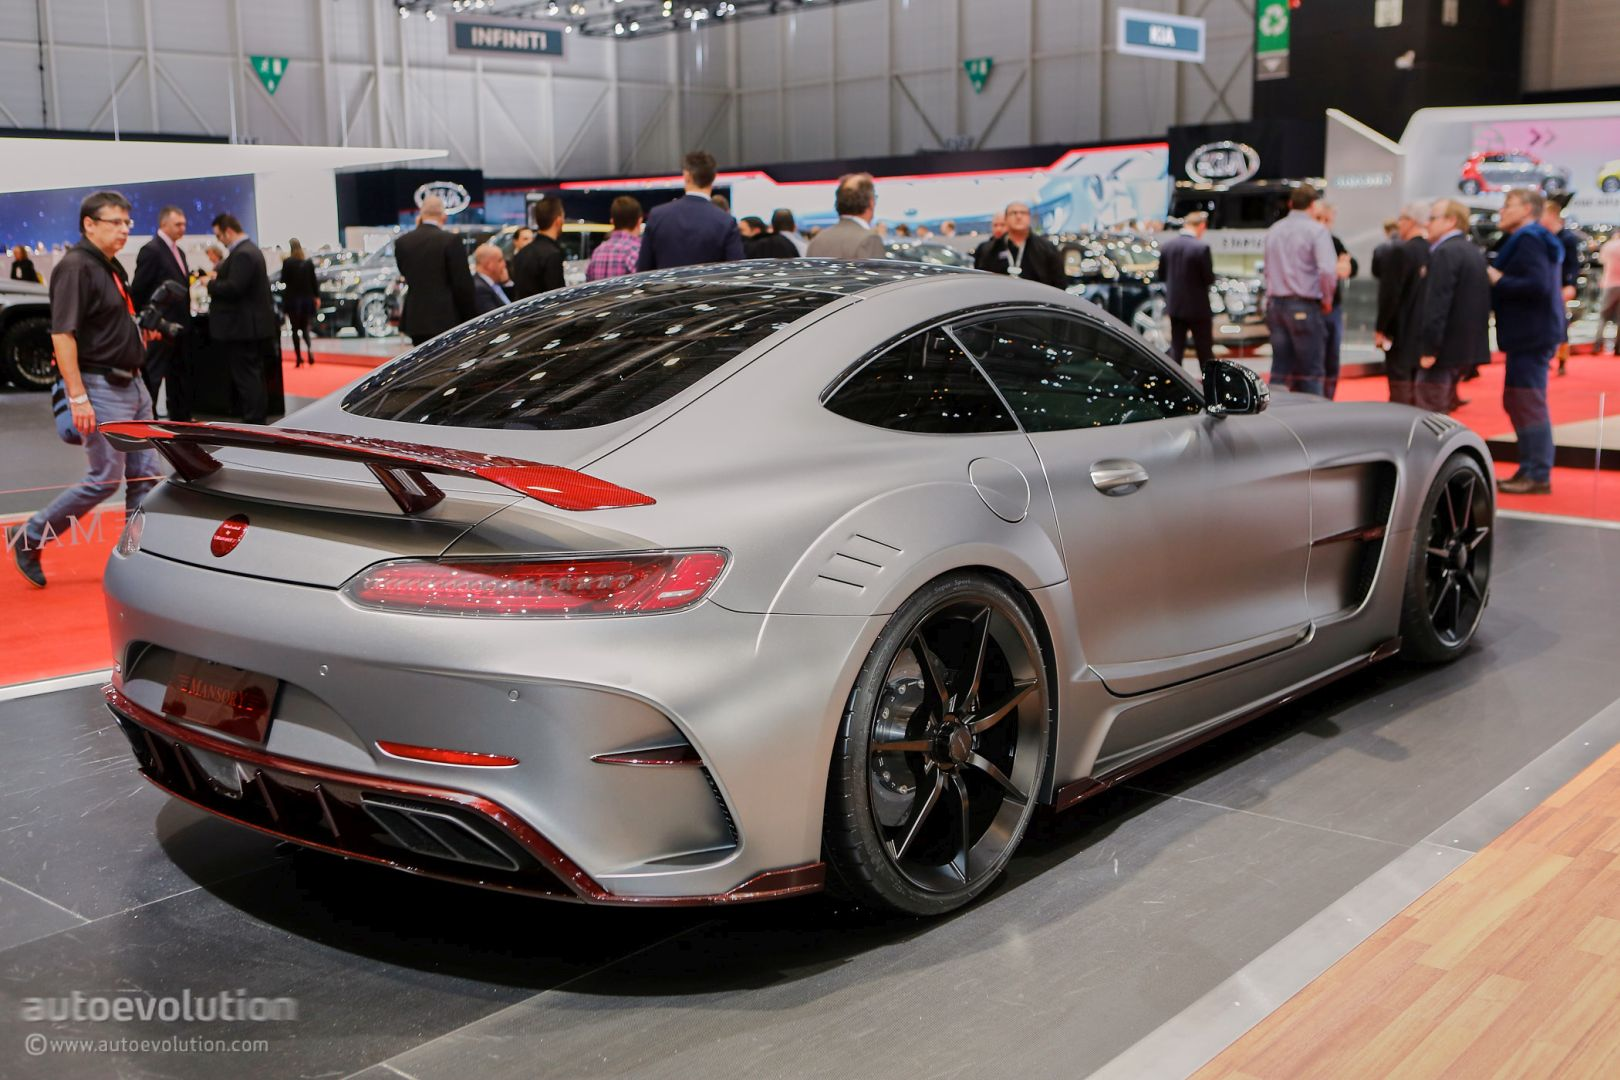 C63 Amg Coupe 2018 >> Mansory's Mercedes-AMG Geneva Booth Sees GLE63 Coupe Outgunning Their 730 HP GT - autoevolution